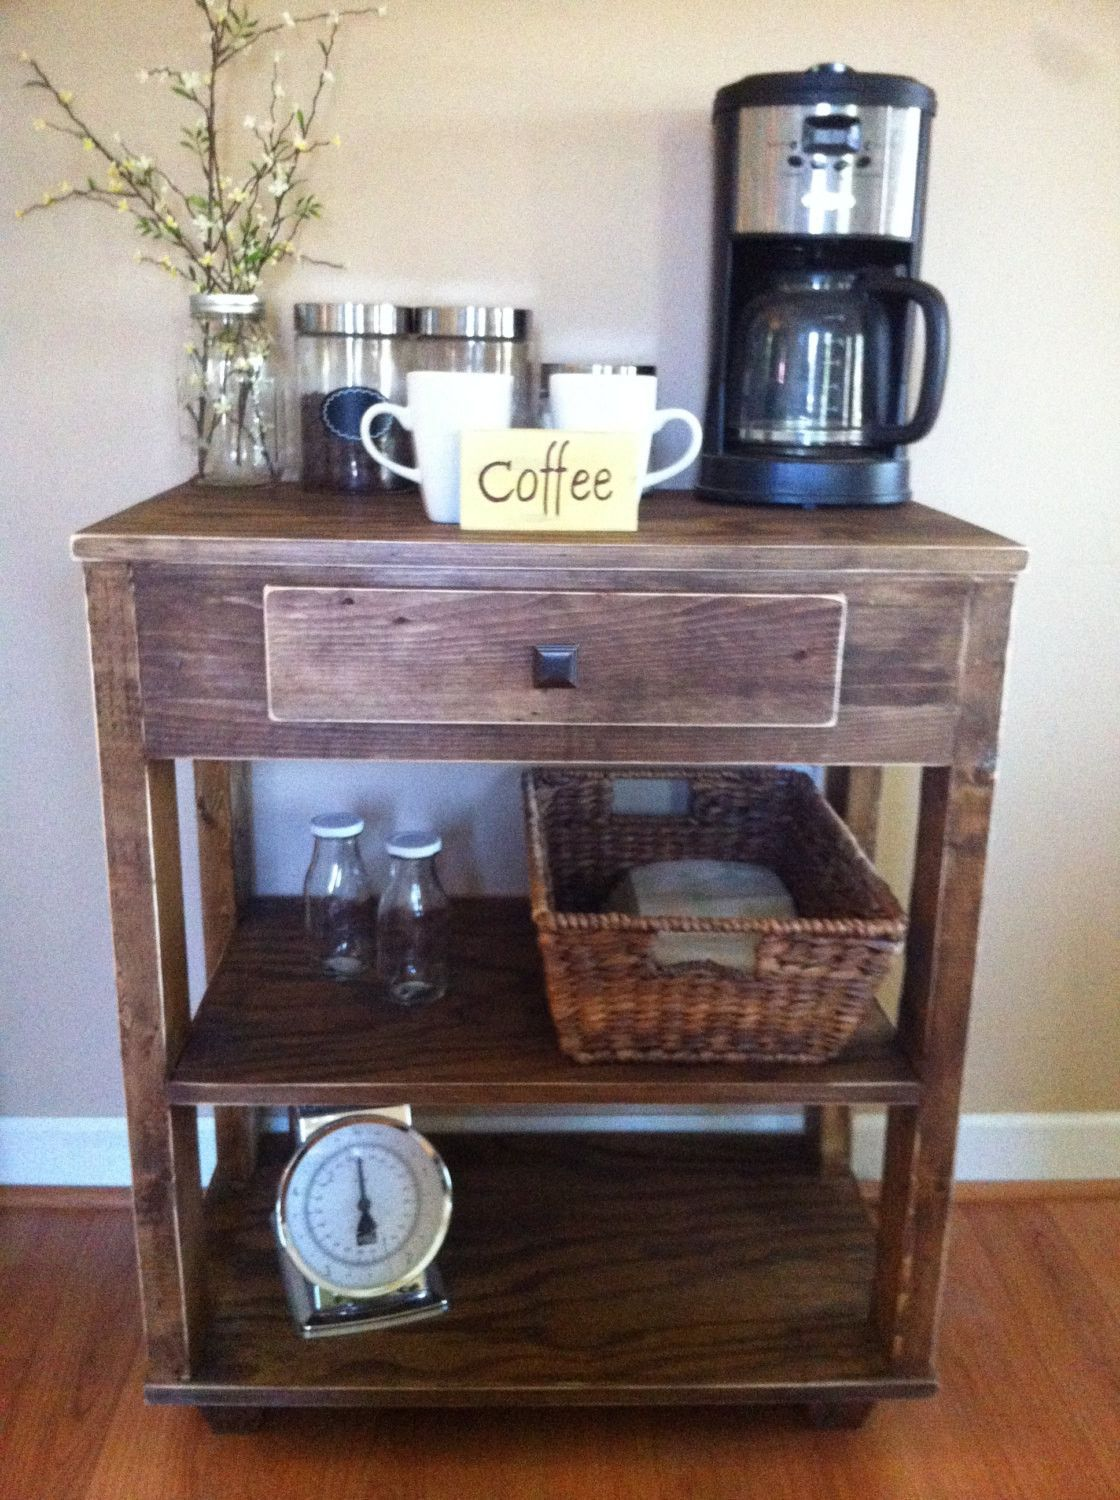 Coffee Bar Ideas for Kitchen - Minimalist Coffee Station